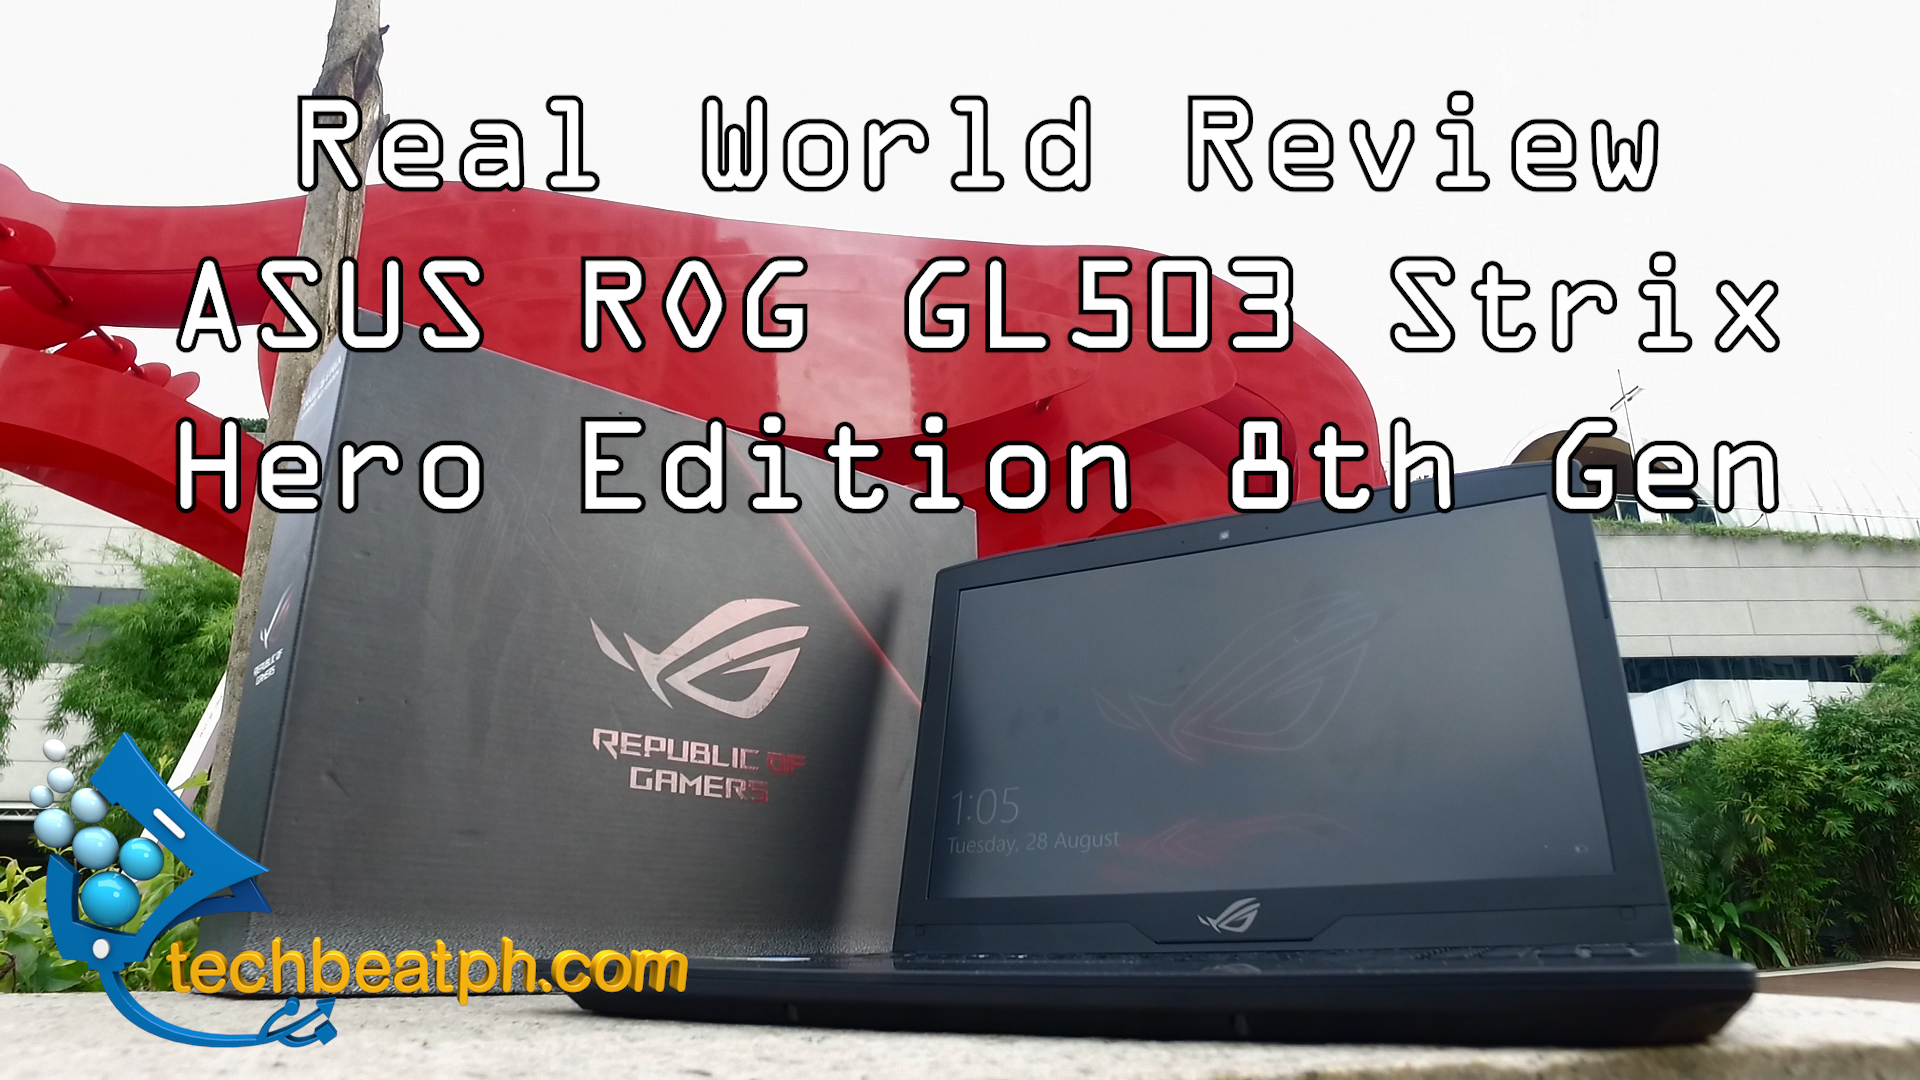 ROG Strix GL503 8th Gen Hero Real World Review